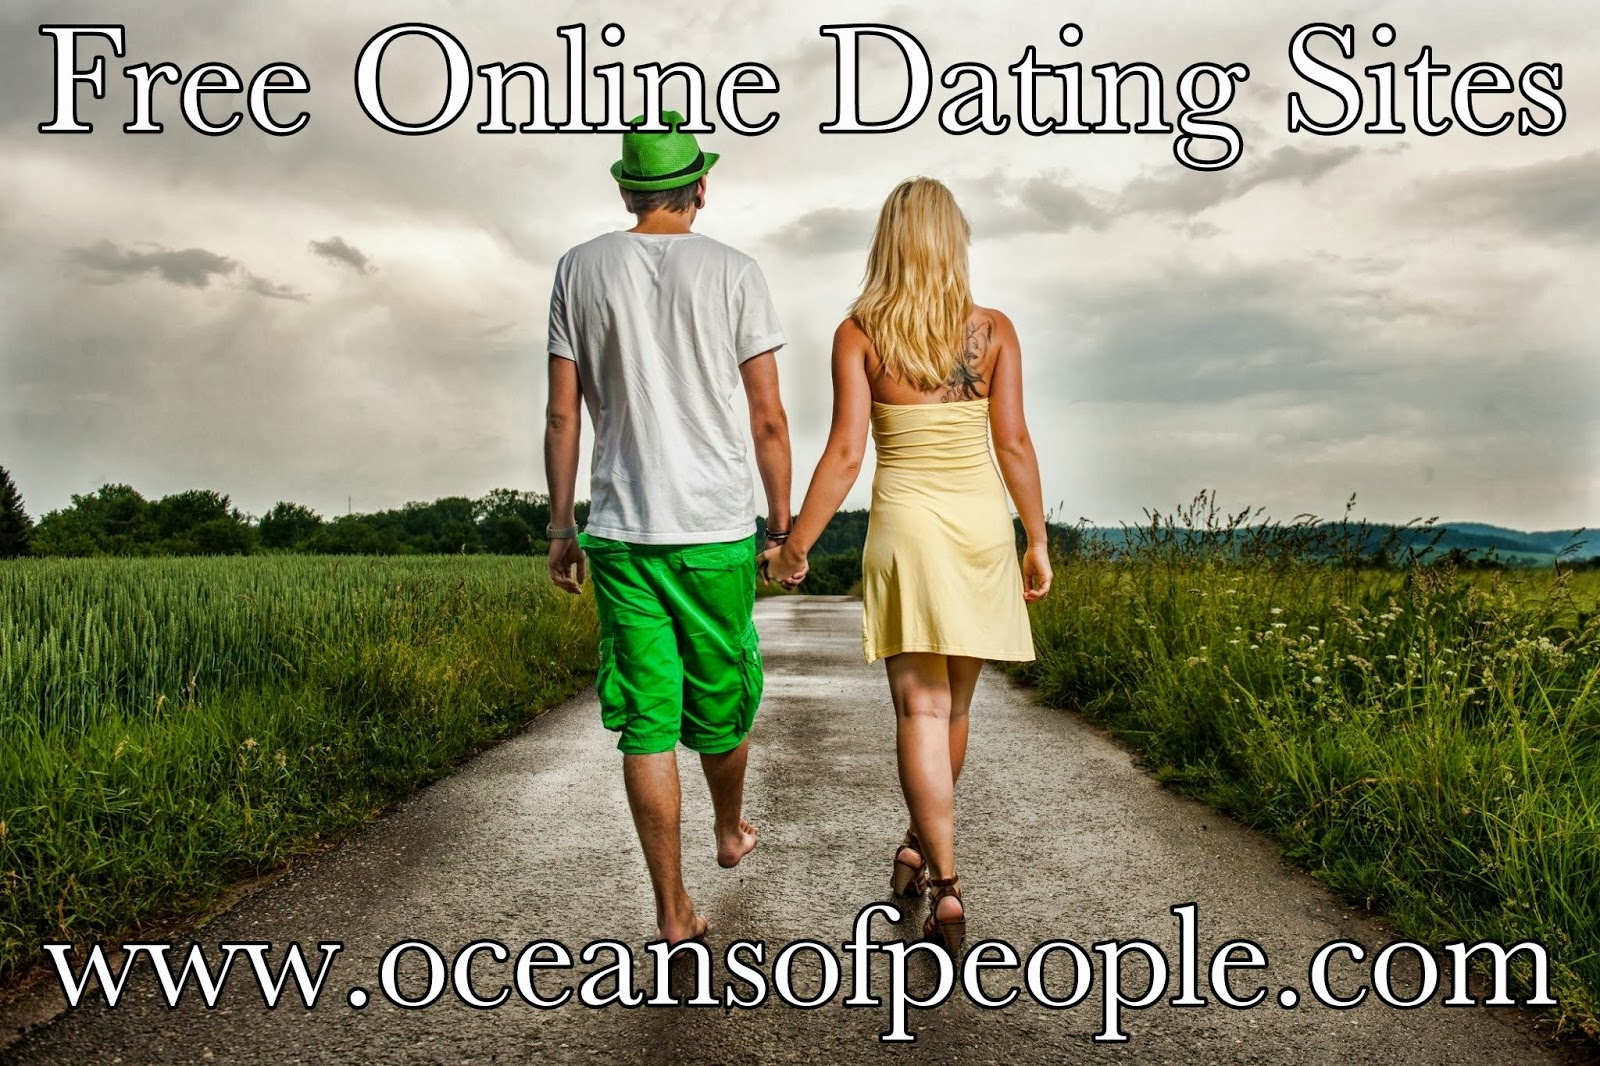 How free dating site